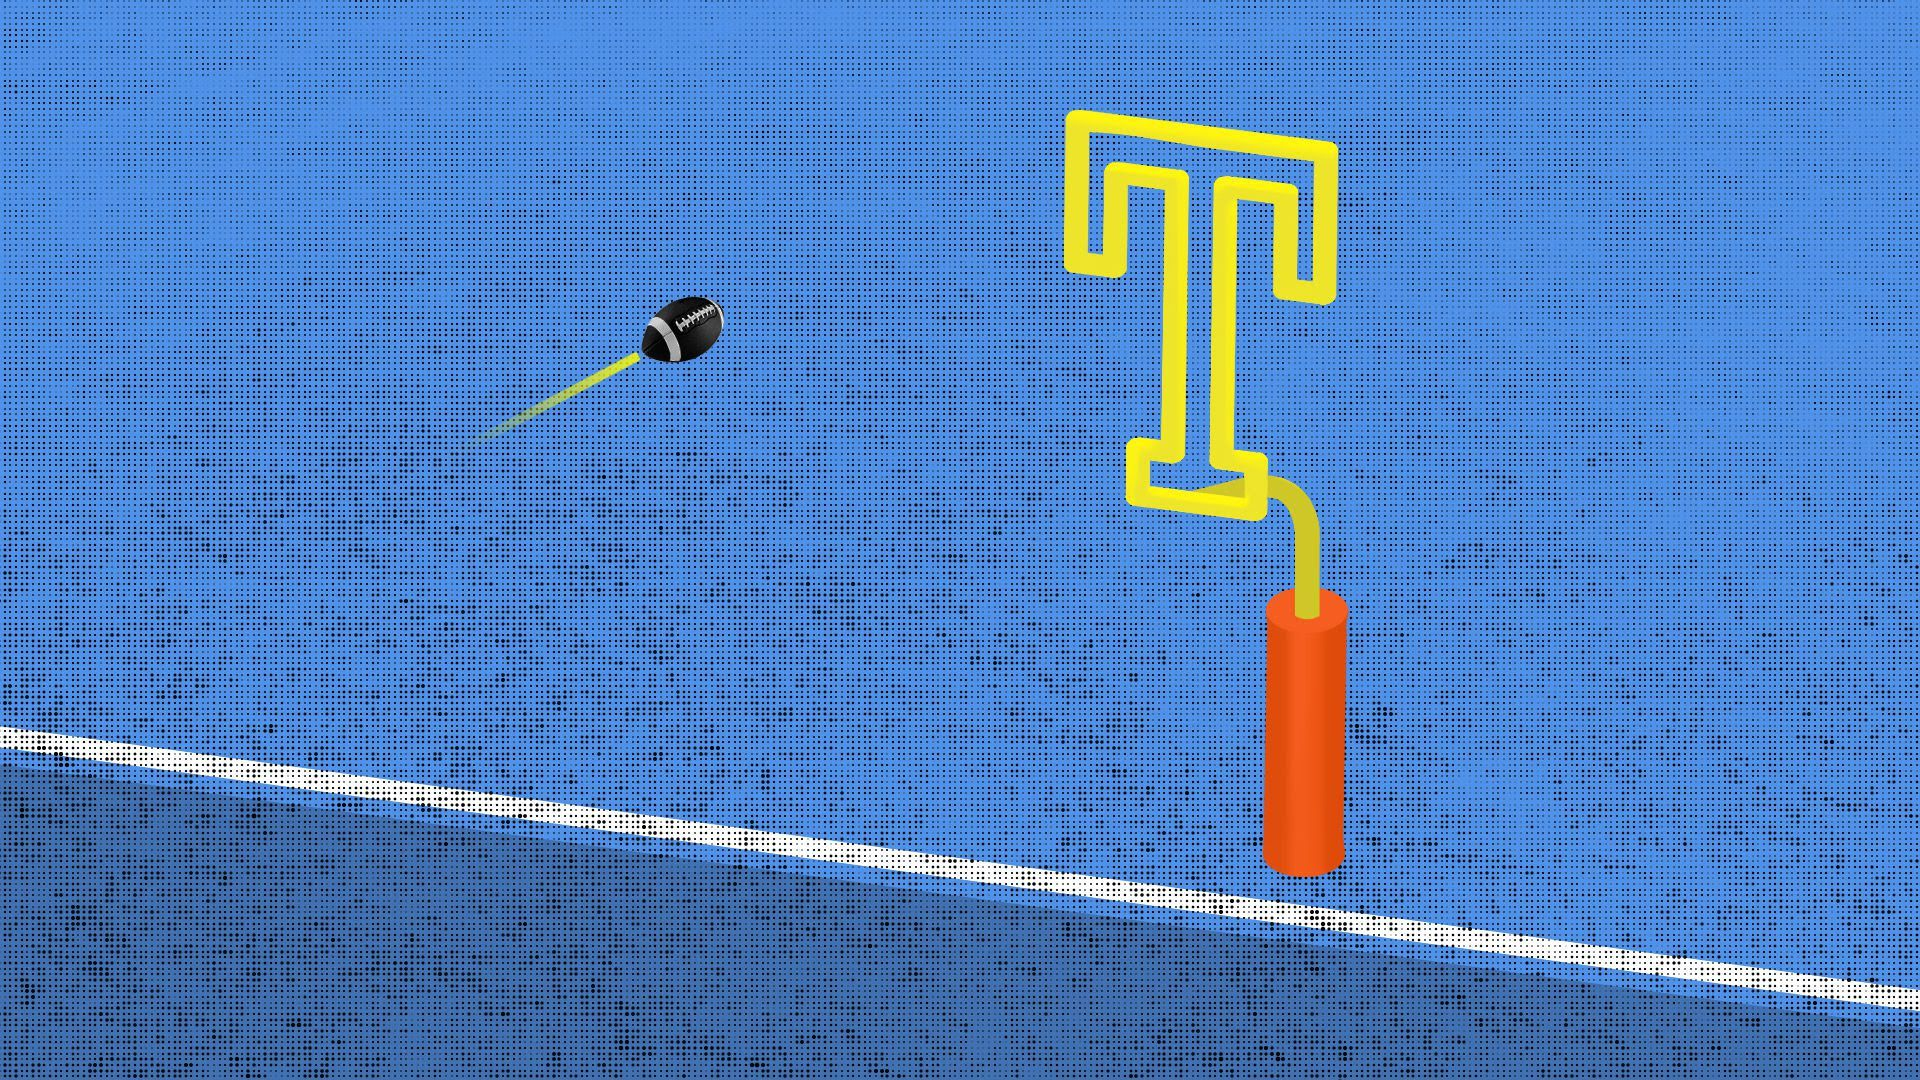 An illustration of a football heading toward a goal post in the shape of a capital T